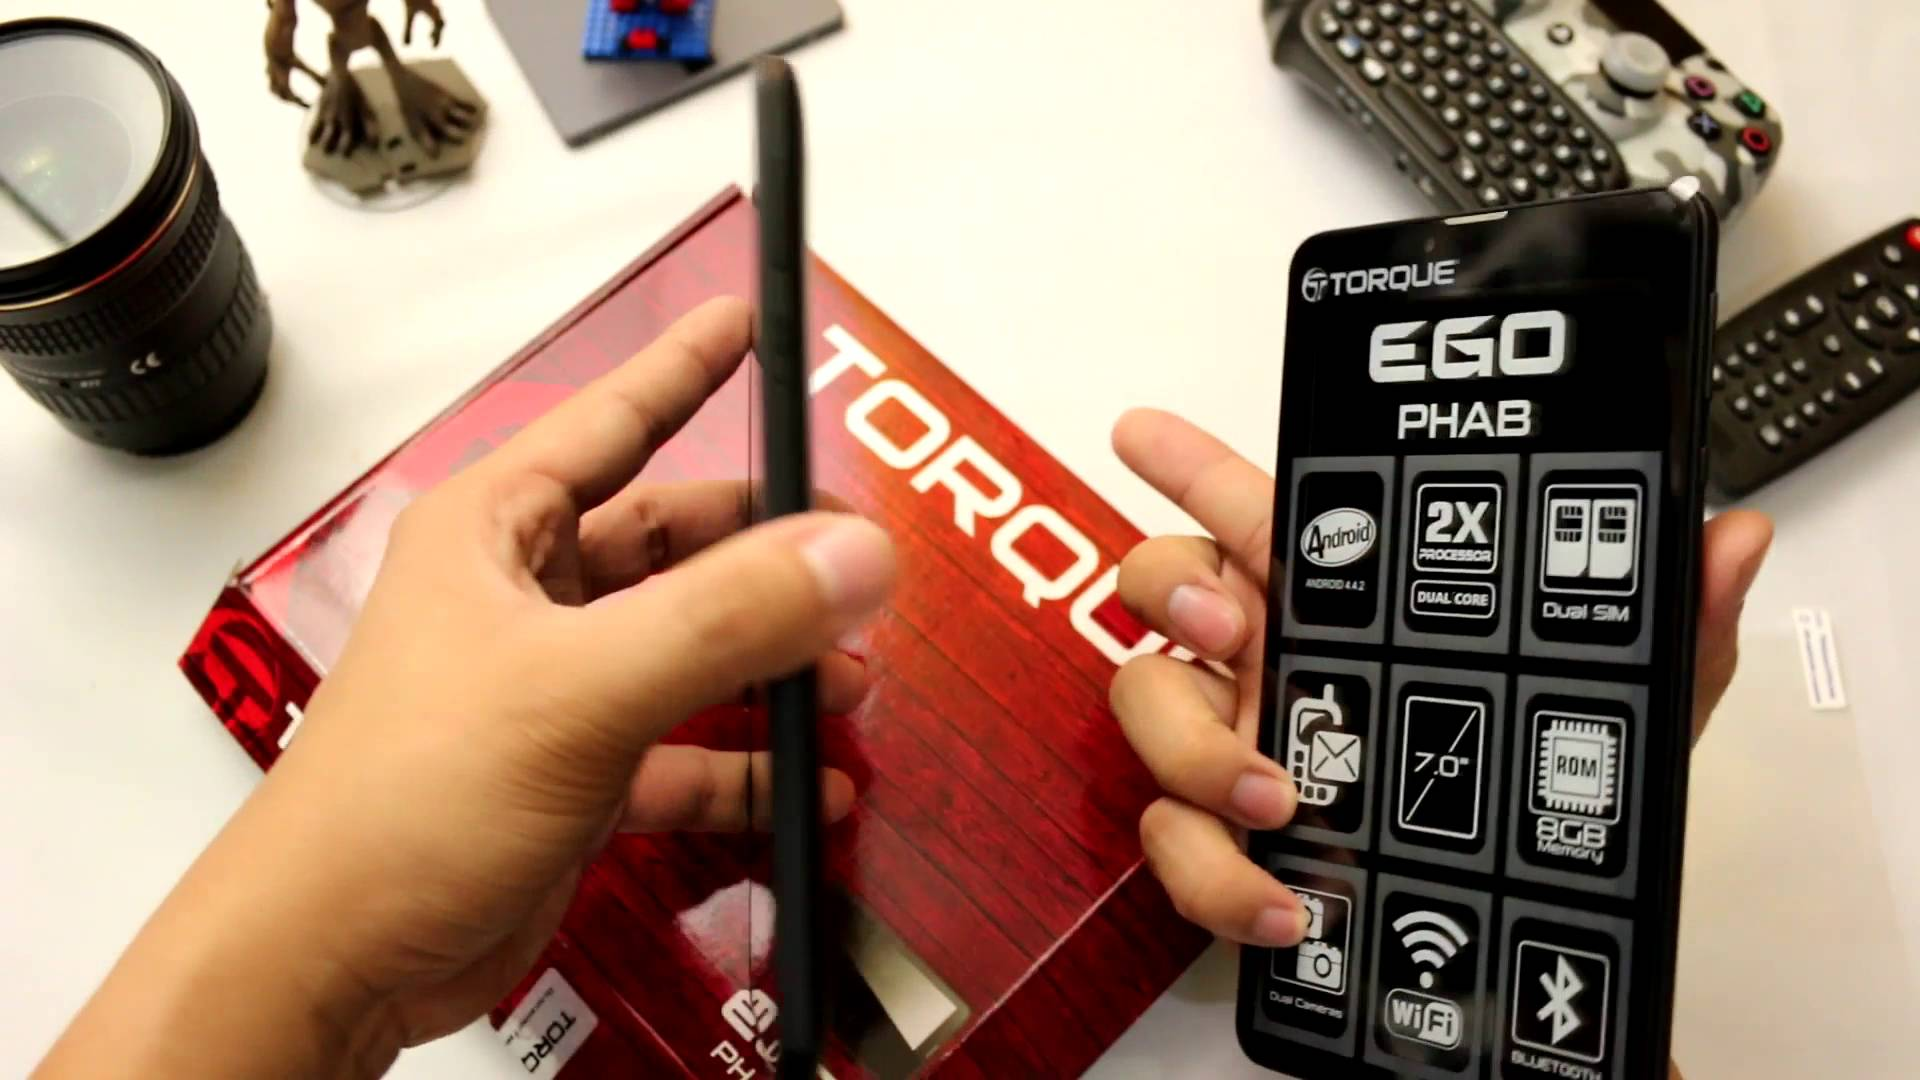 maxresdefault 12 - VIDEO: Torque Ego Phab 3G Unboxing and Device Preview